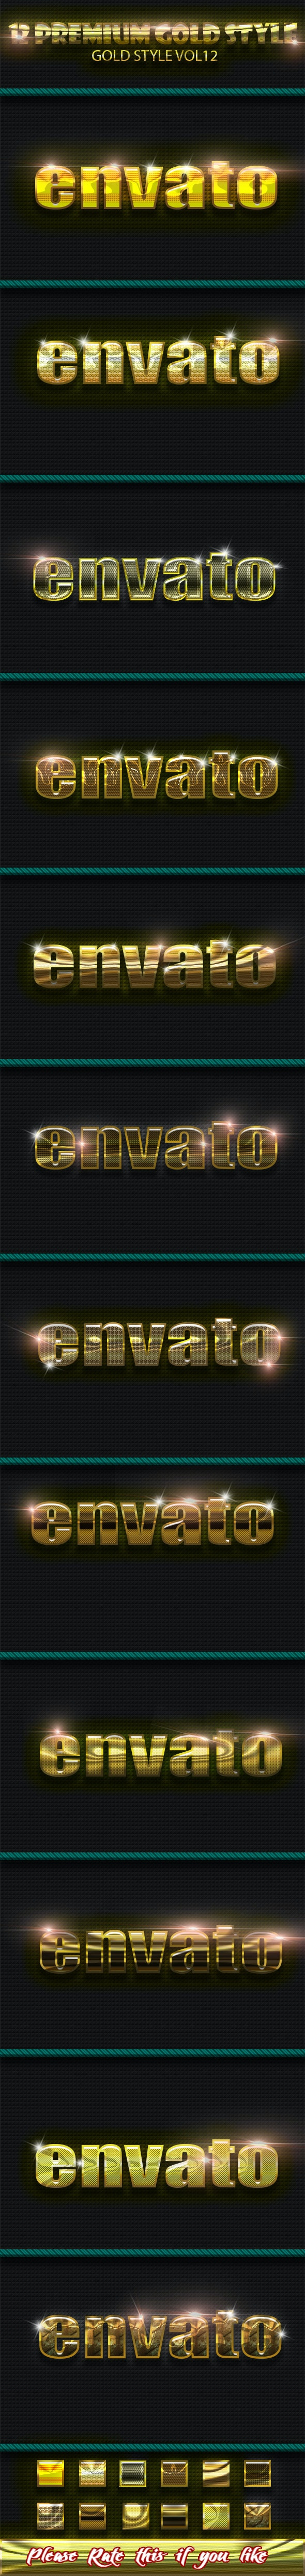 12 Photoshop GOLD Text Effect Styles Vol 12 - Text Effects Styles